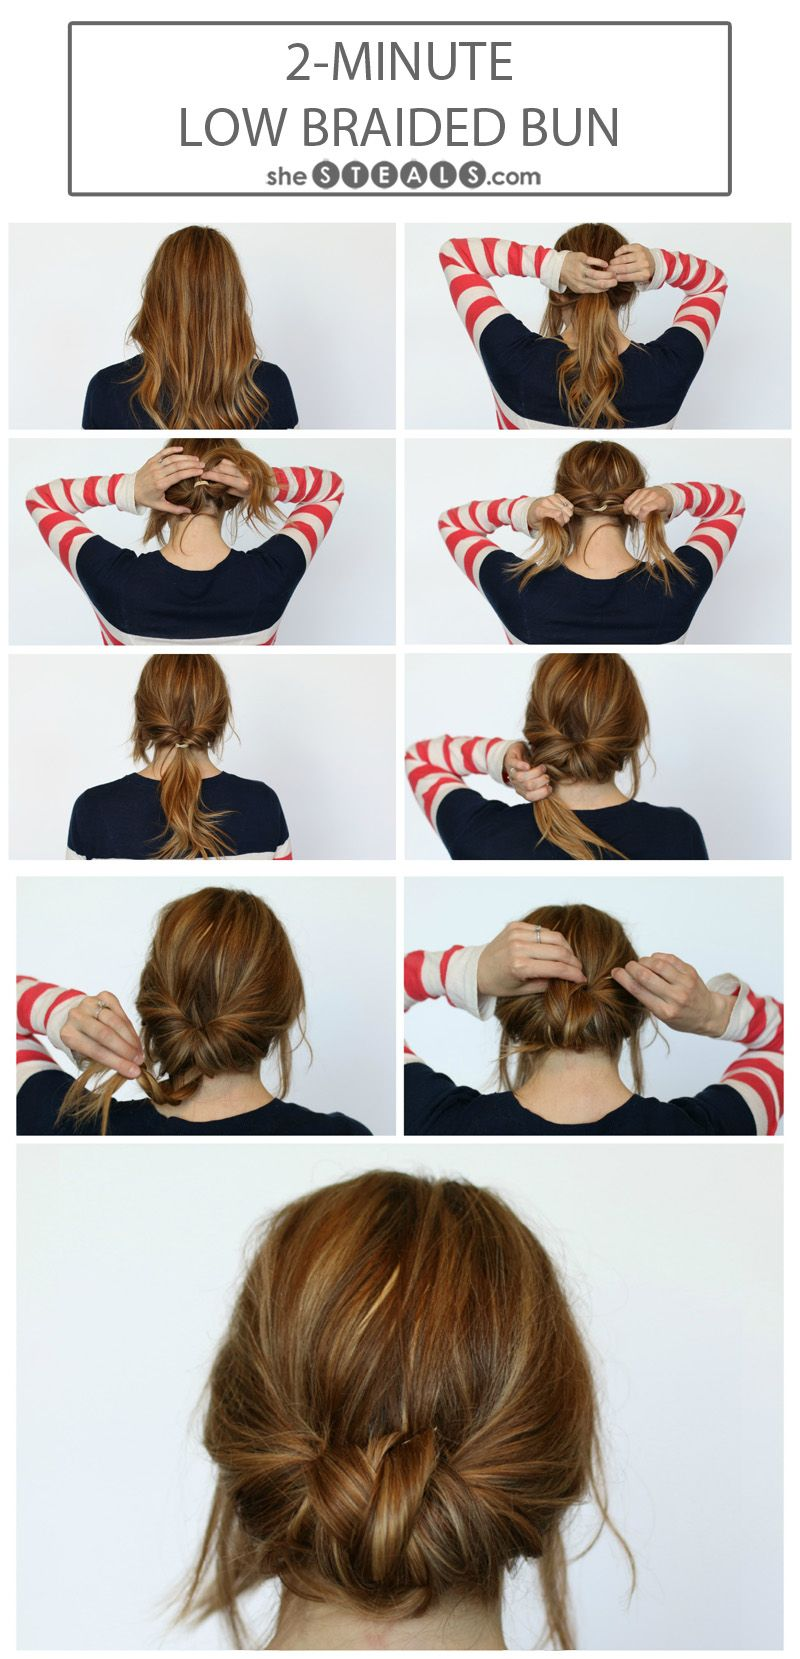 Minute low braided bun hair and makeup pinterest morning